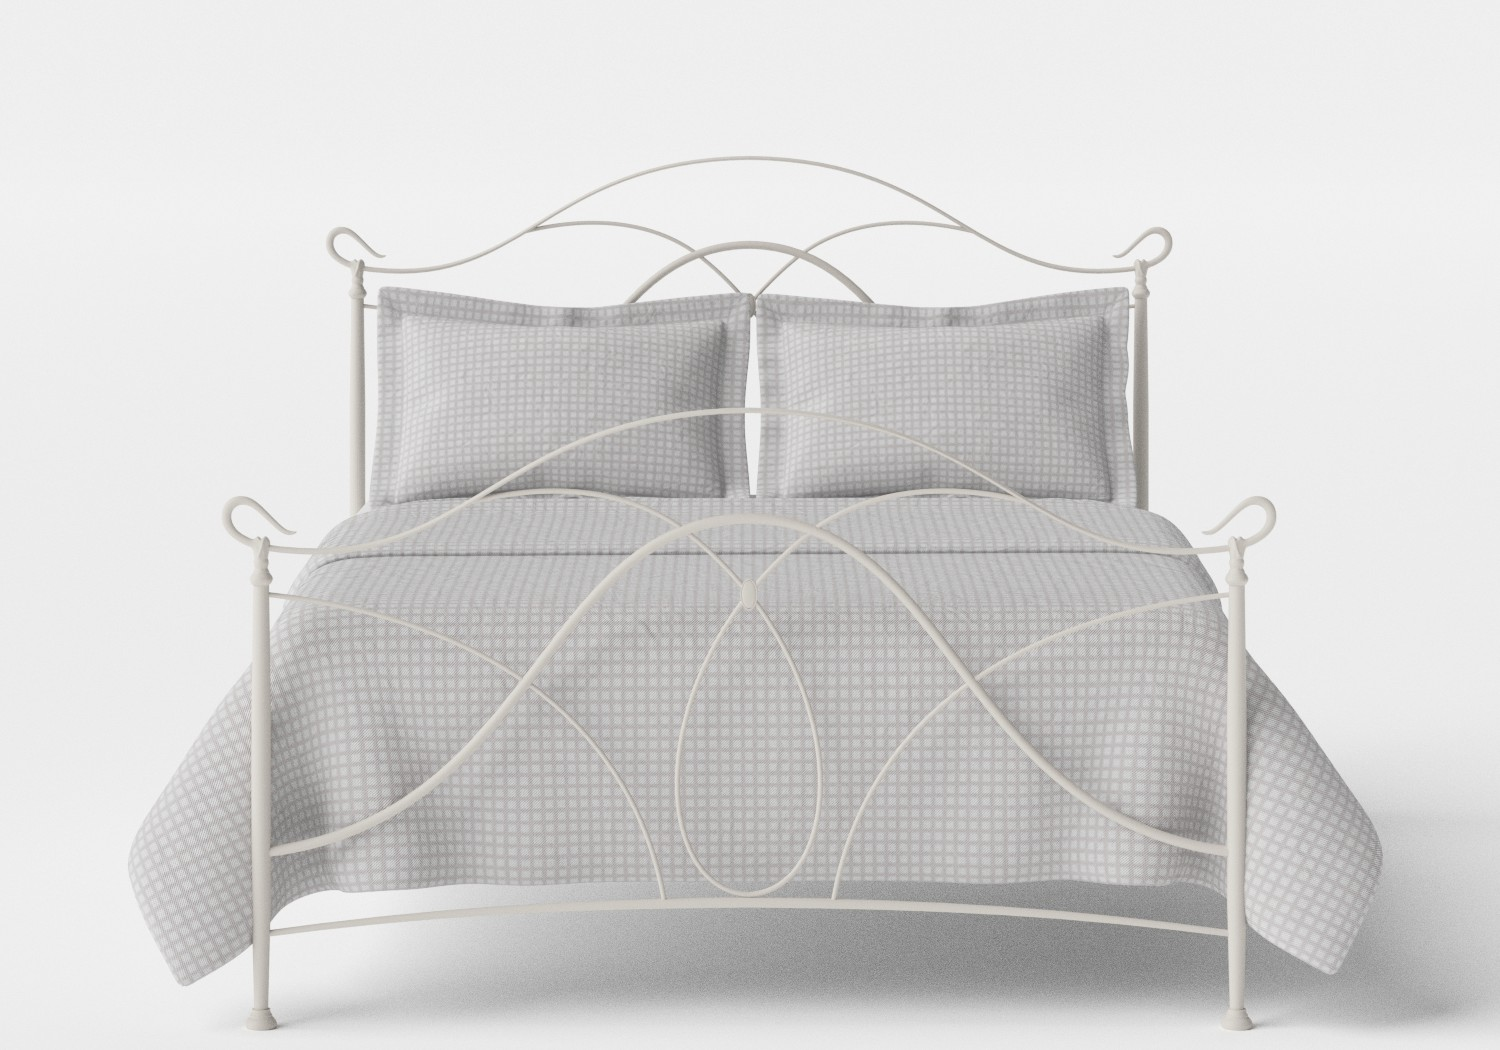 Ardo Iron/Metal Bed in Glossy Ivory